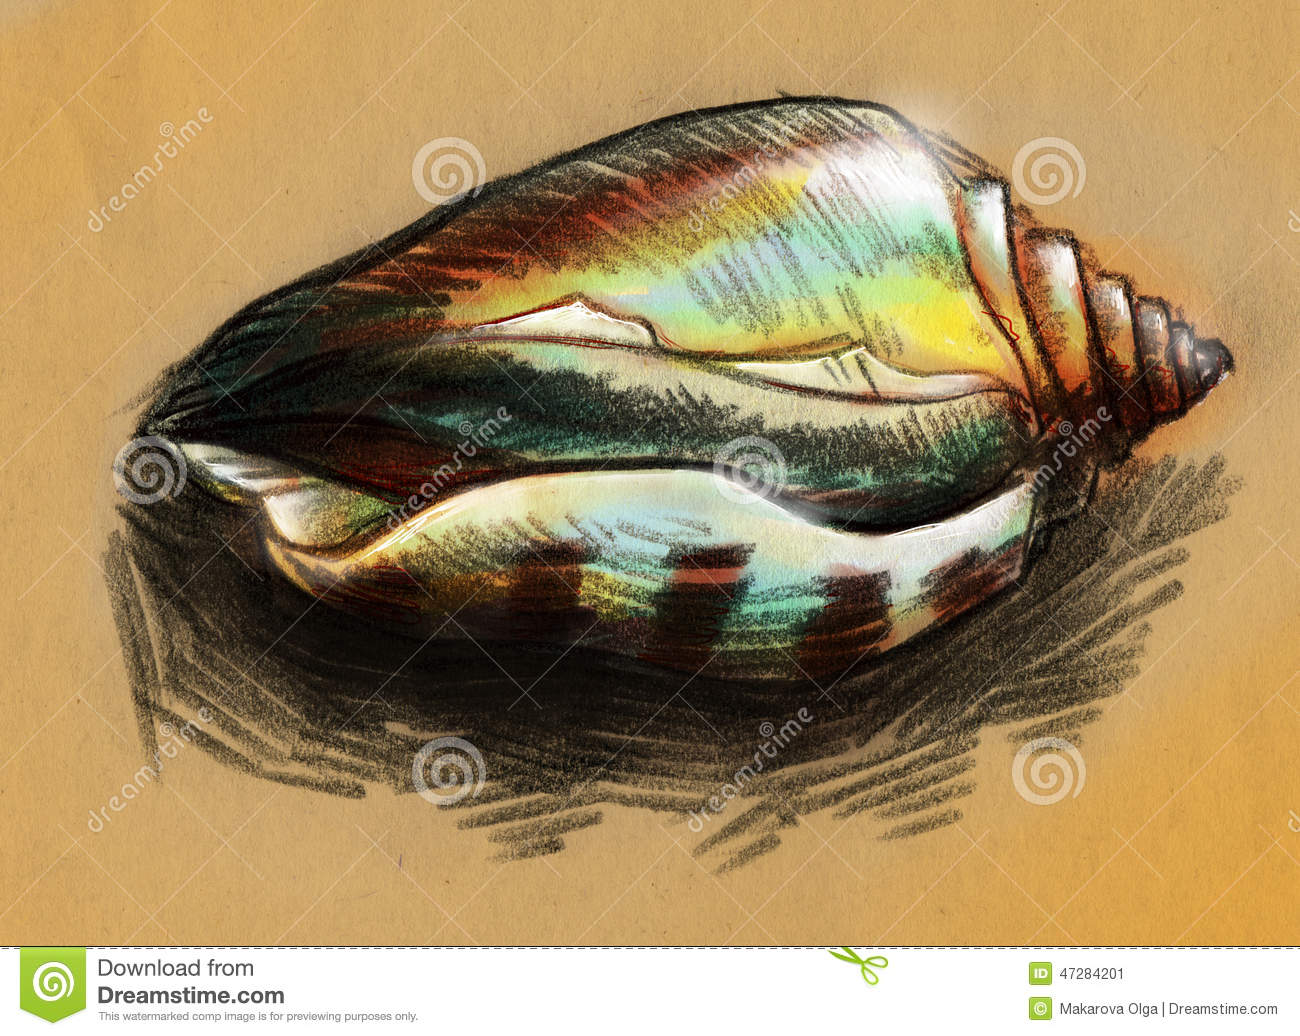 Hand Drawn Pencil Sketch Of A Shiny Green And Yellow Sea Shell With